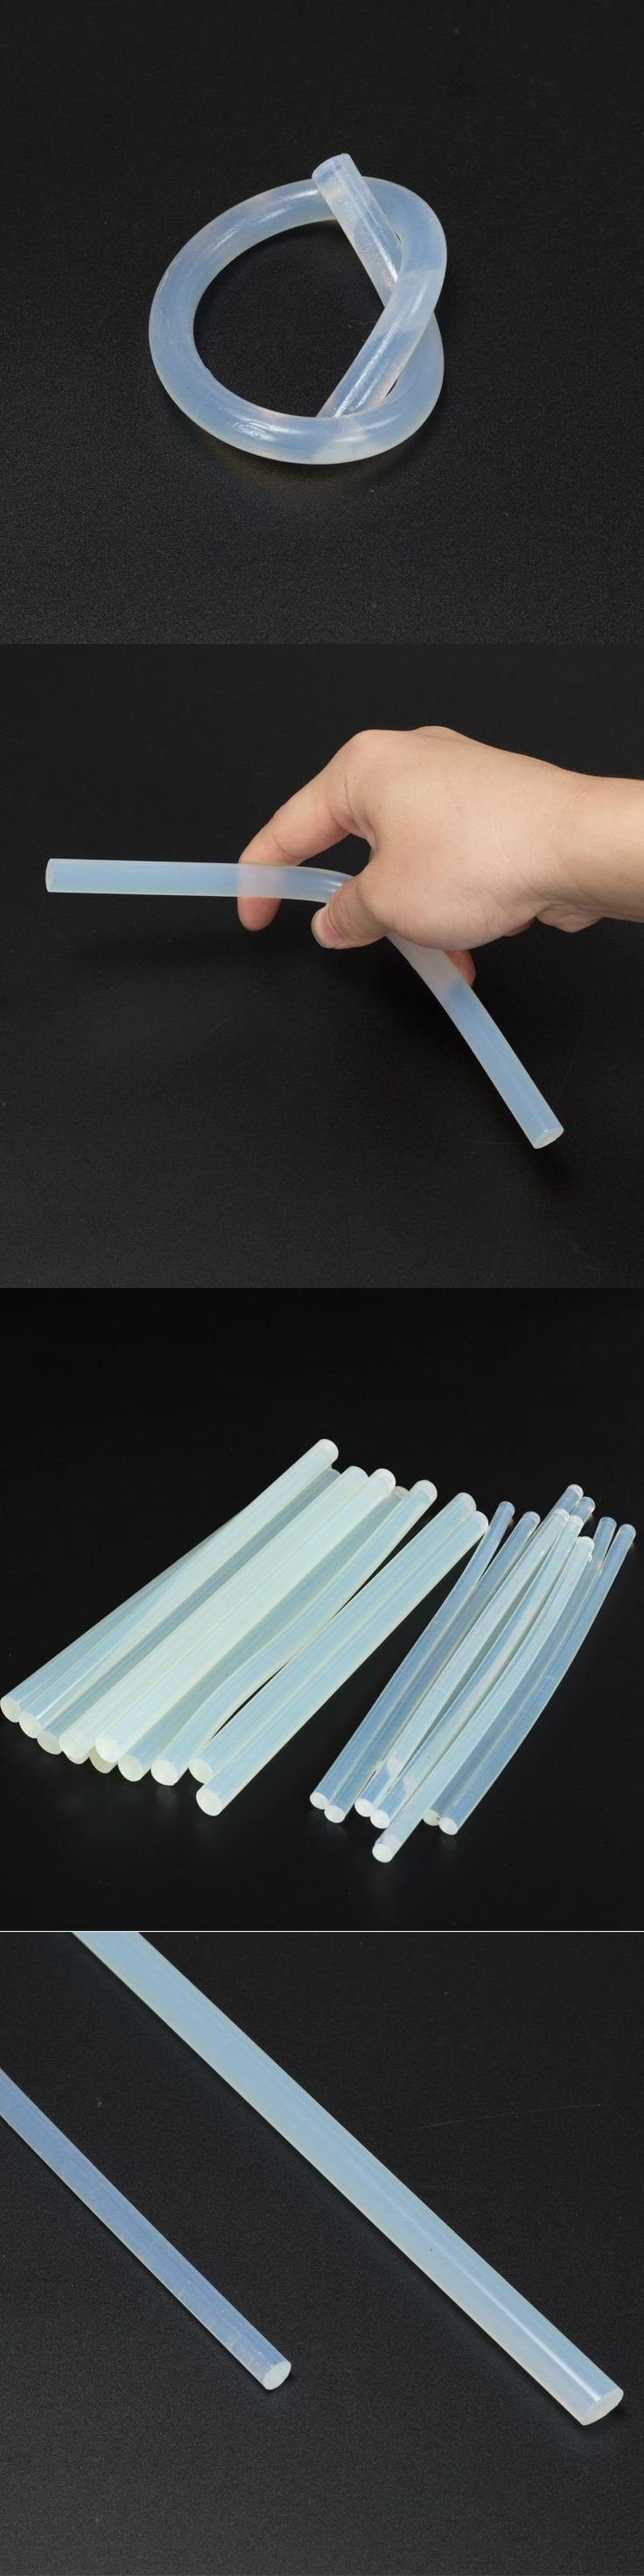 Hot Melt Adhesive Rods 7 * 220MM And 11 * 220MM White Transparent Hot Melt Adhesive Bar Technology Album Crafts Maintenance Tool